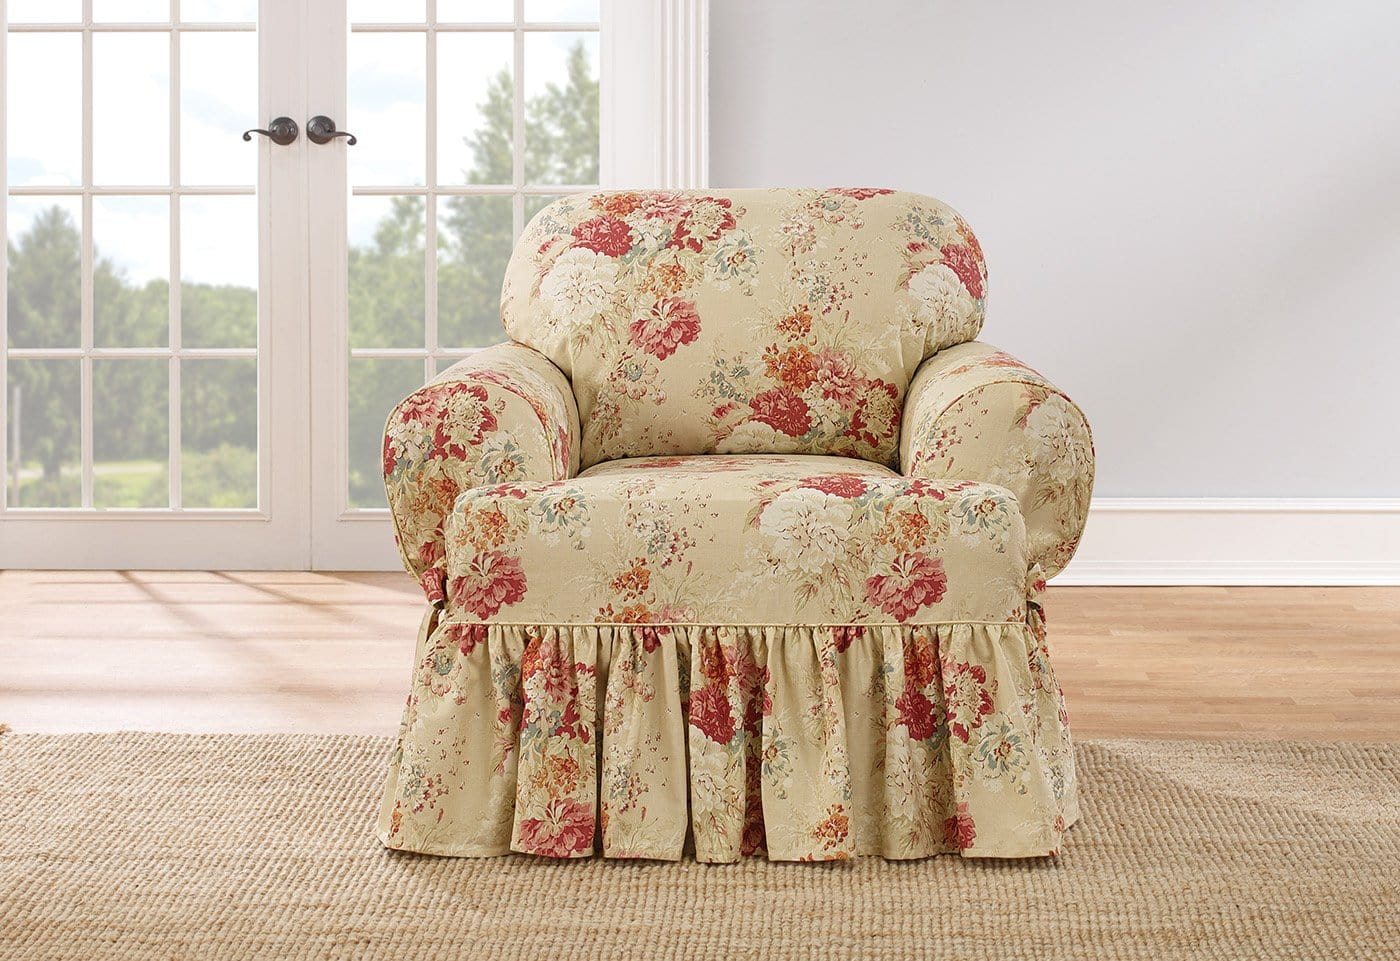 Ballad Bouquet By Waverly One Piece Chair Slipcover Surefit